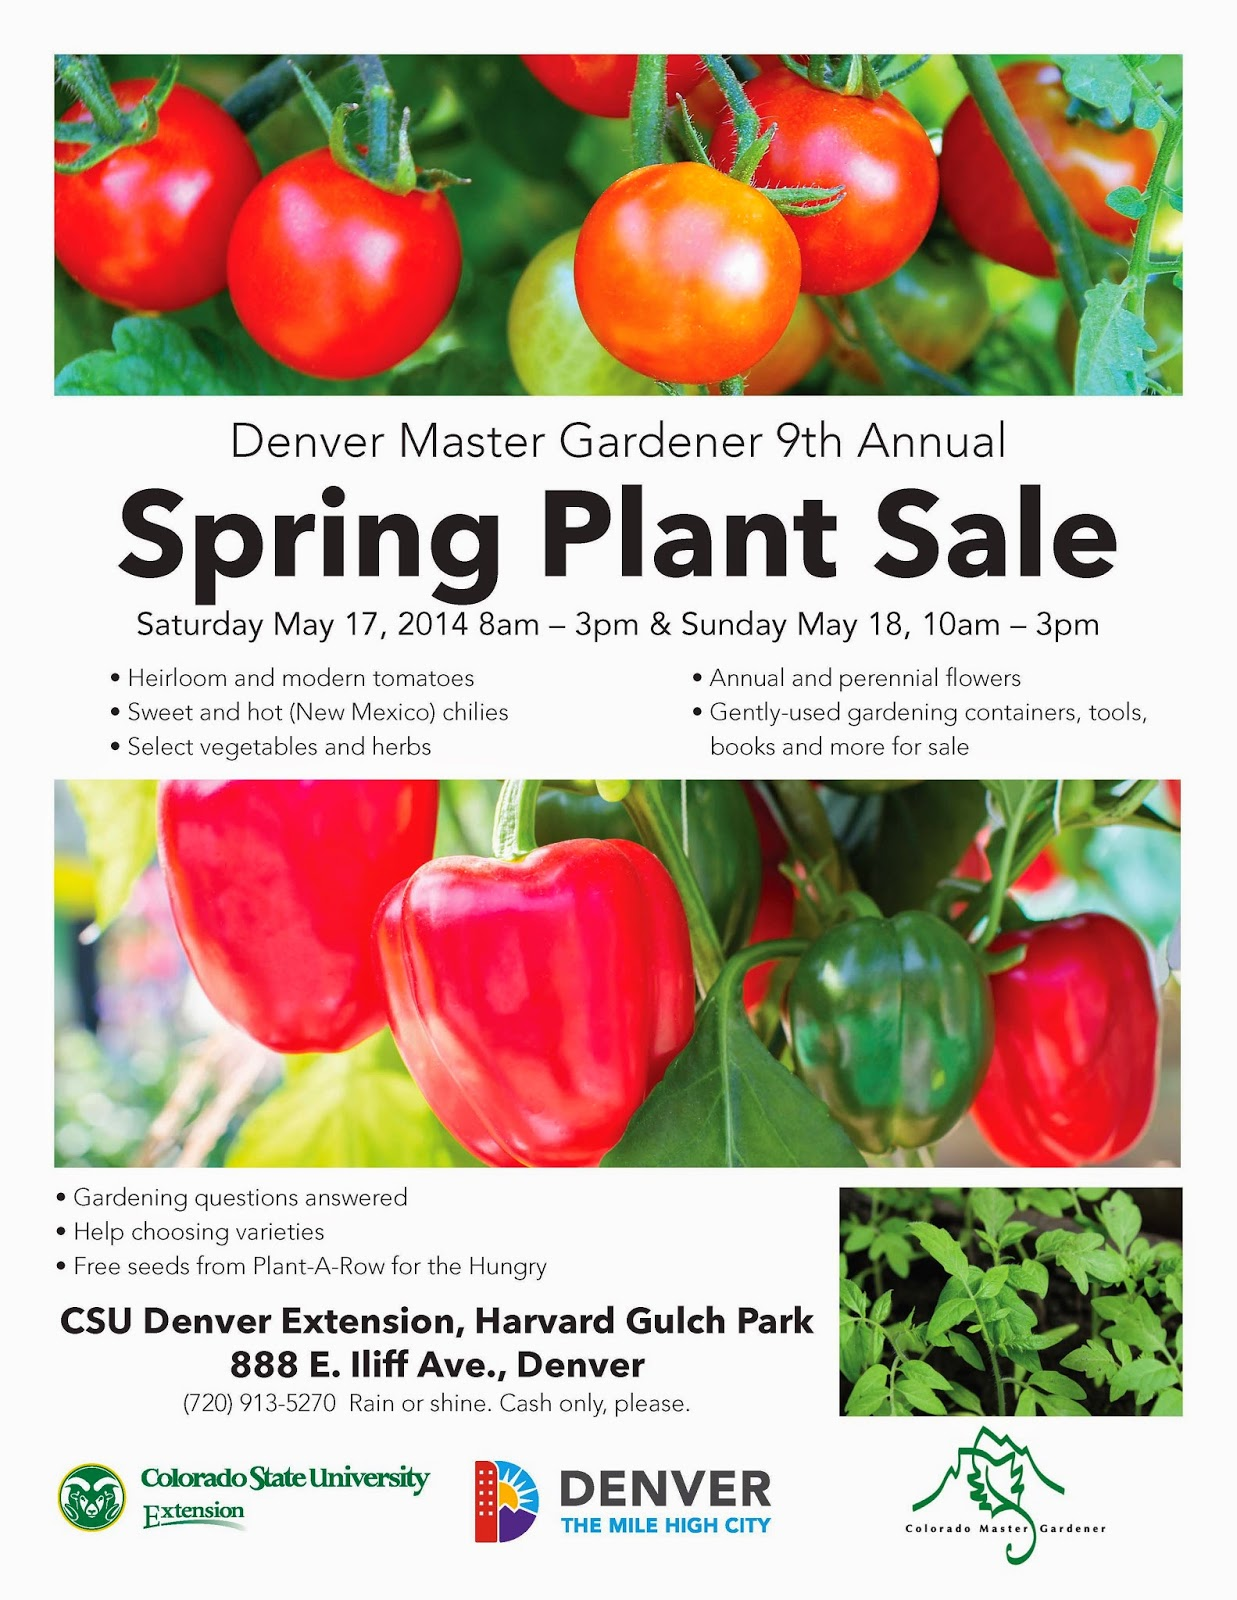 Plant Sale in Denver this Weekend